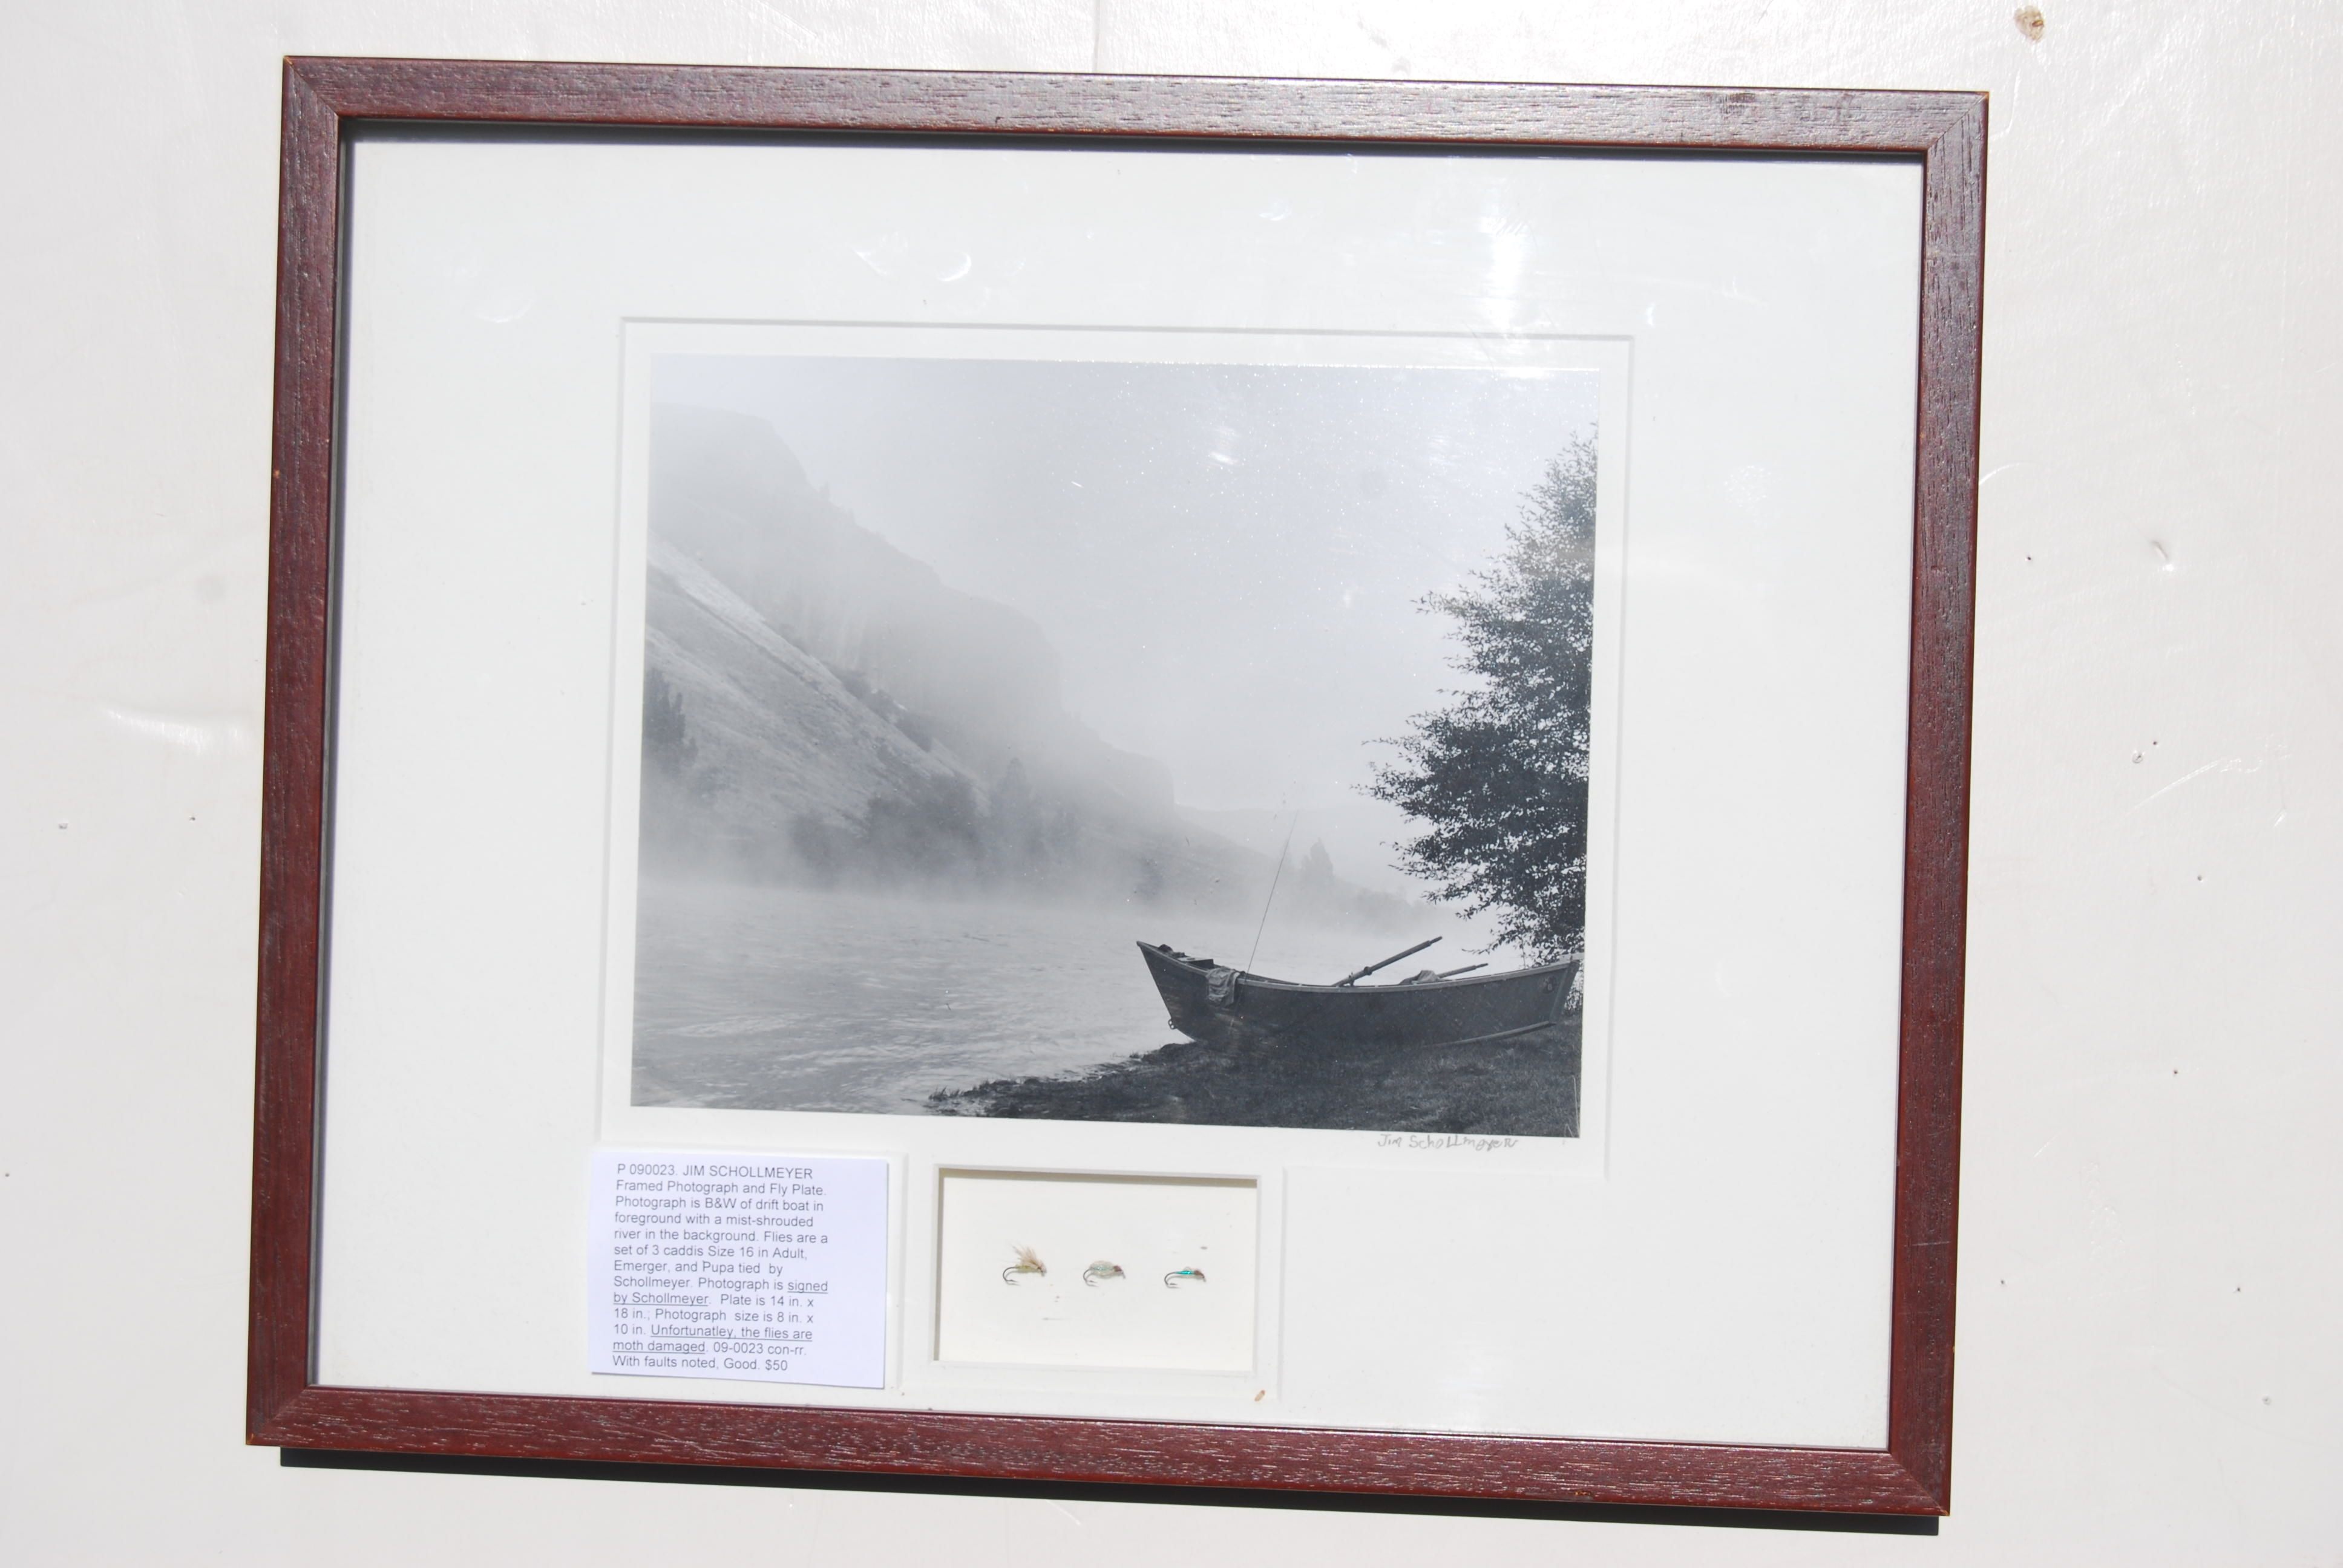 Image for JIM SCHOLLMEYER Framed Photograph and Fly Plate.